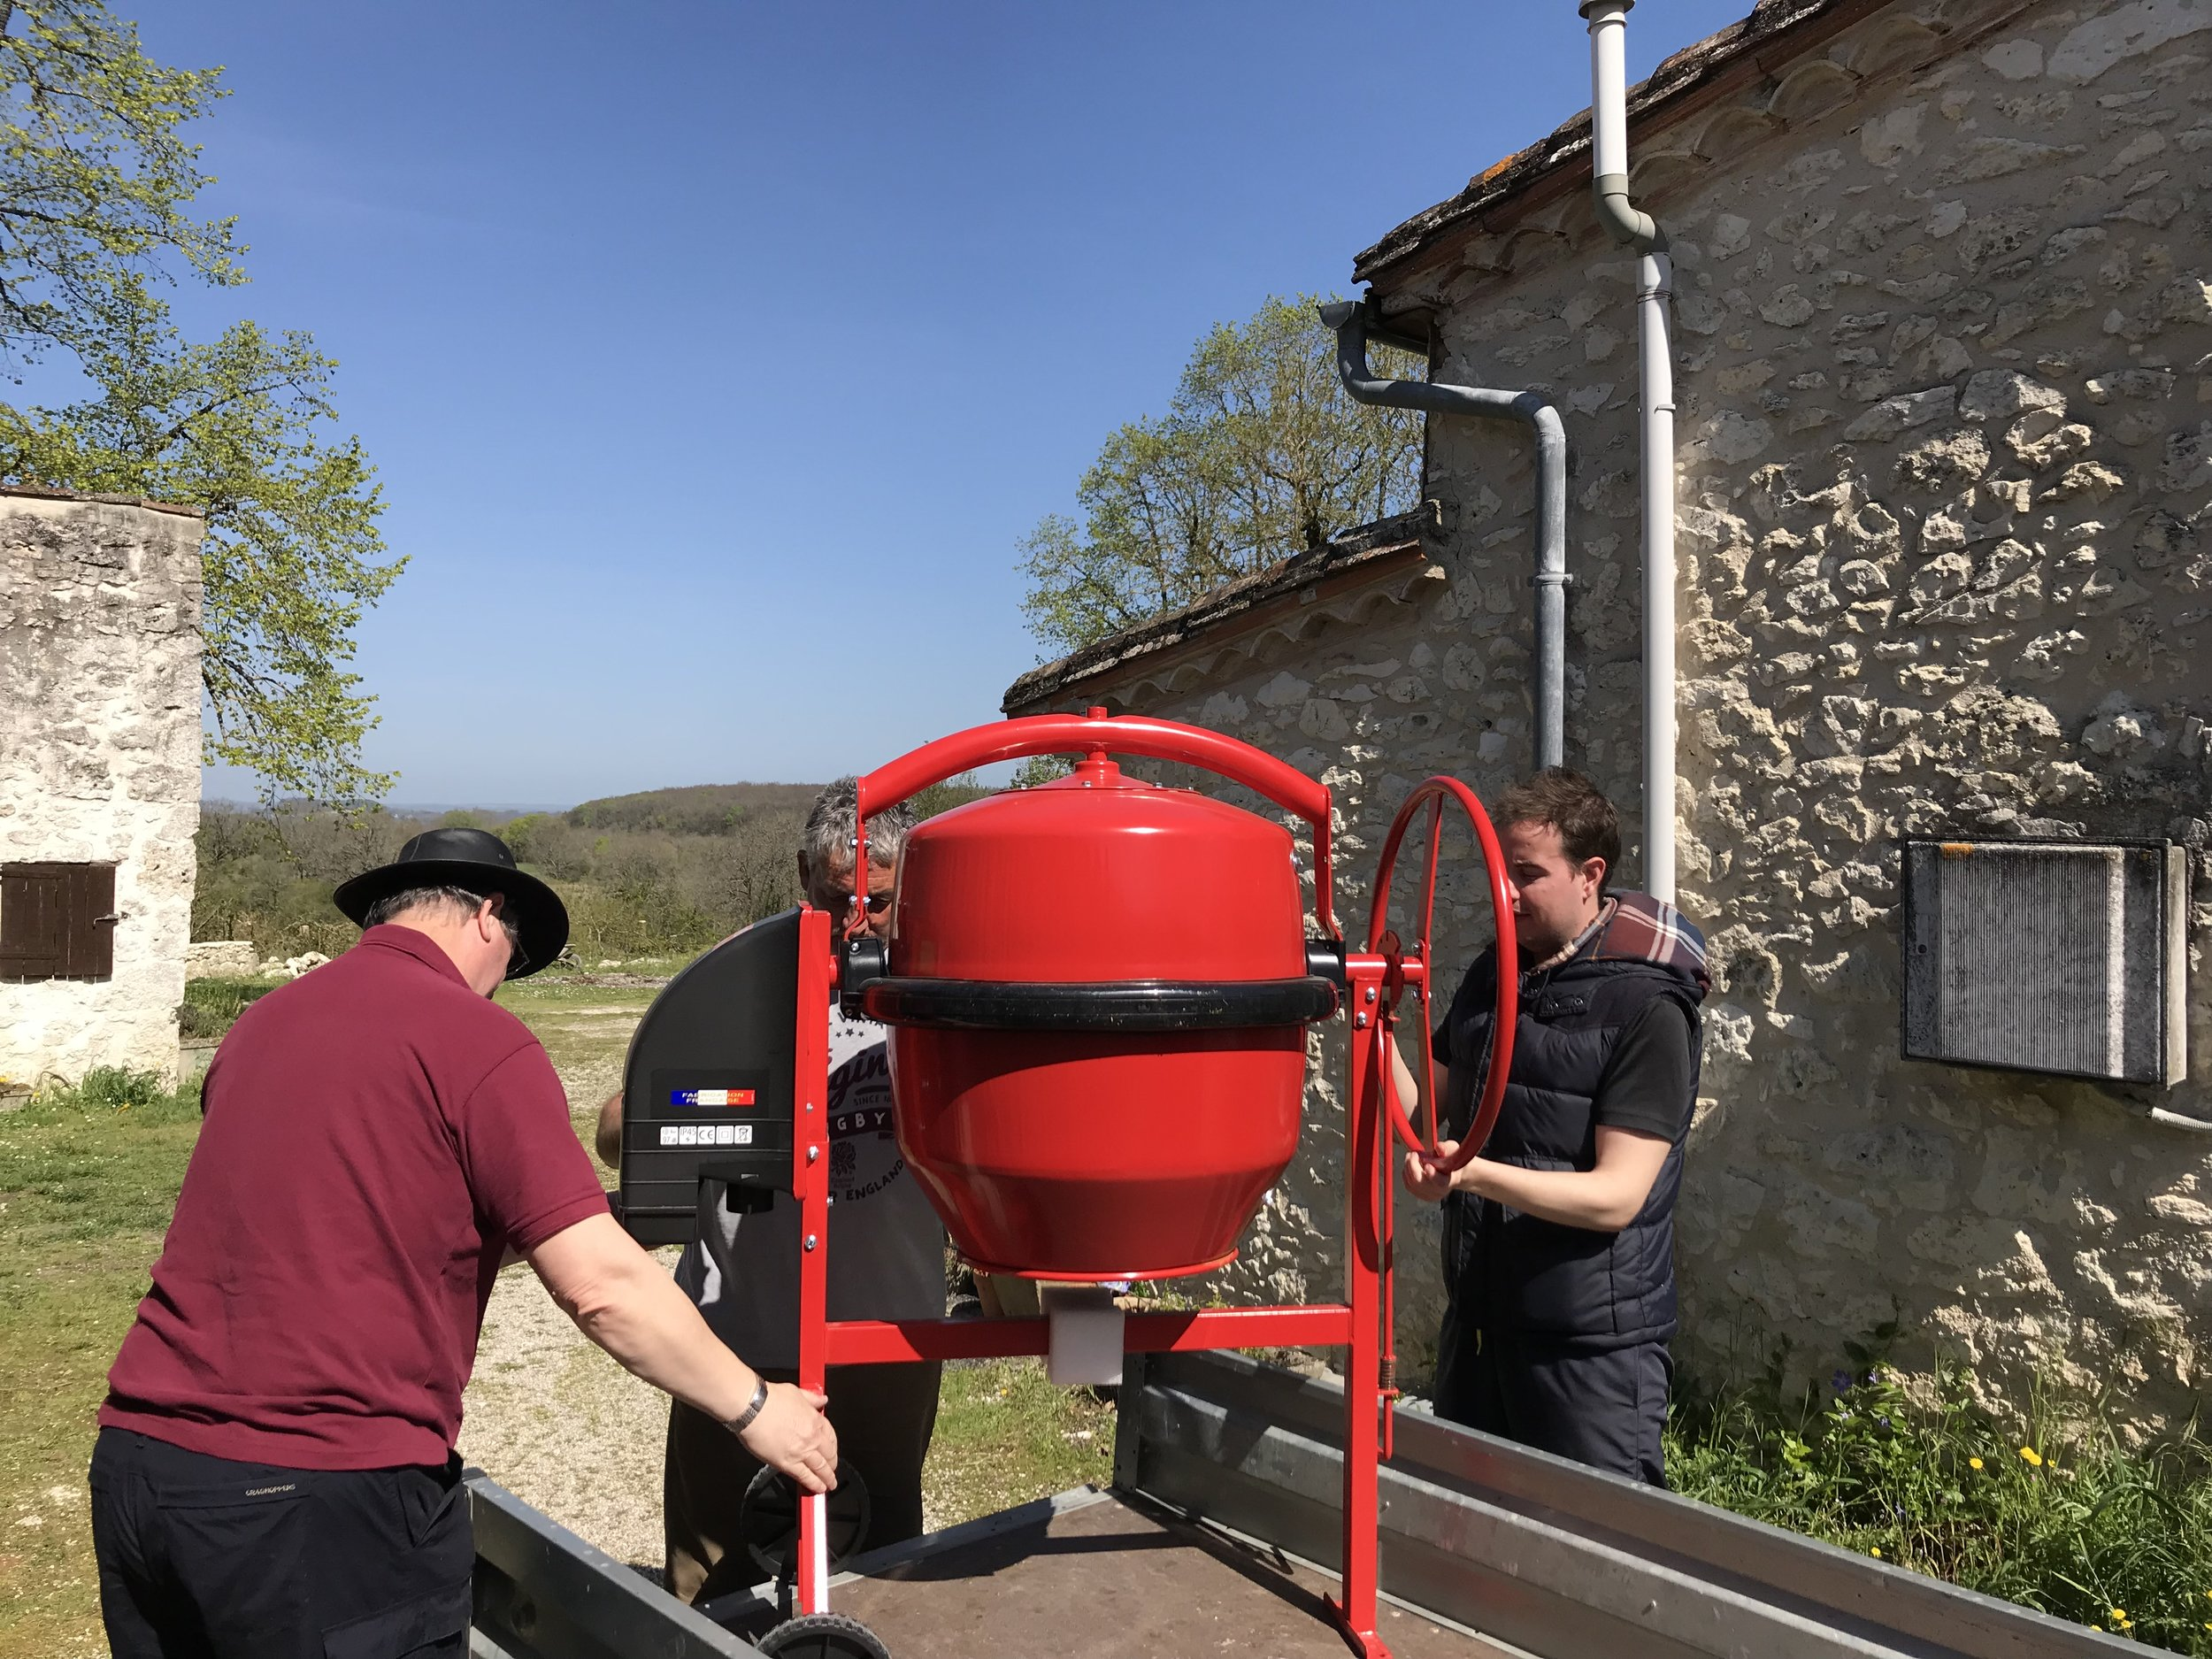 The new cement mixer in Farrari red. A wall builders essential piece of kit!